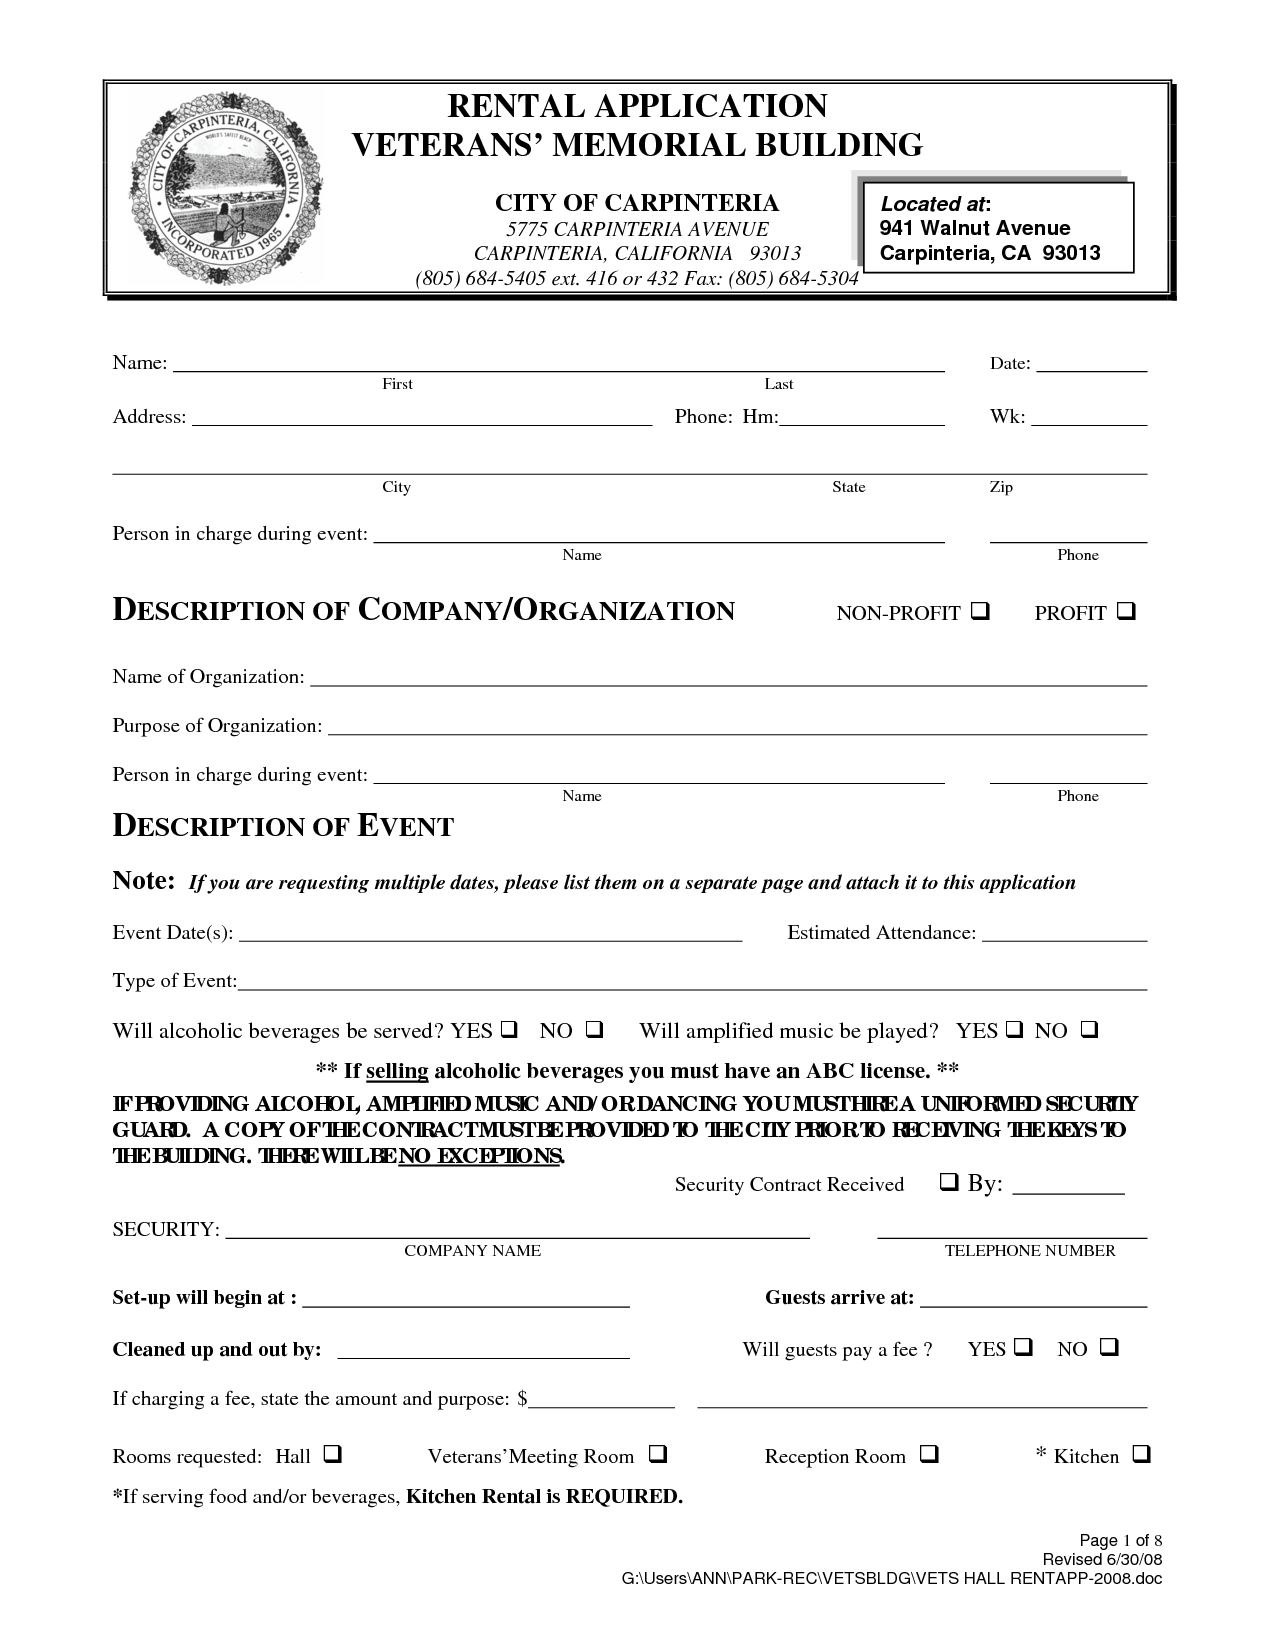 Home Rental Application Form California